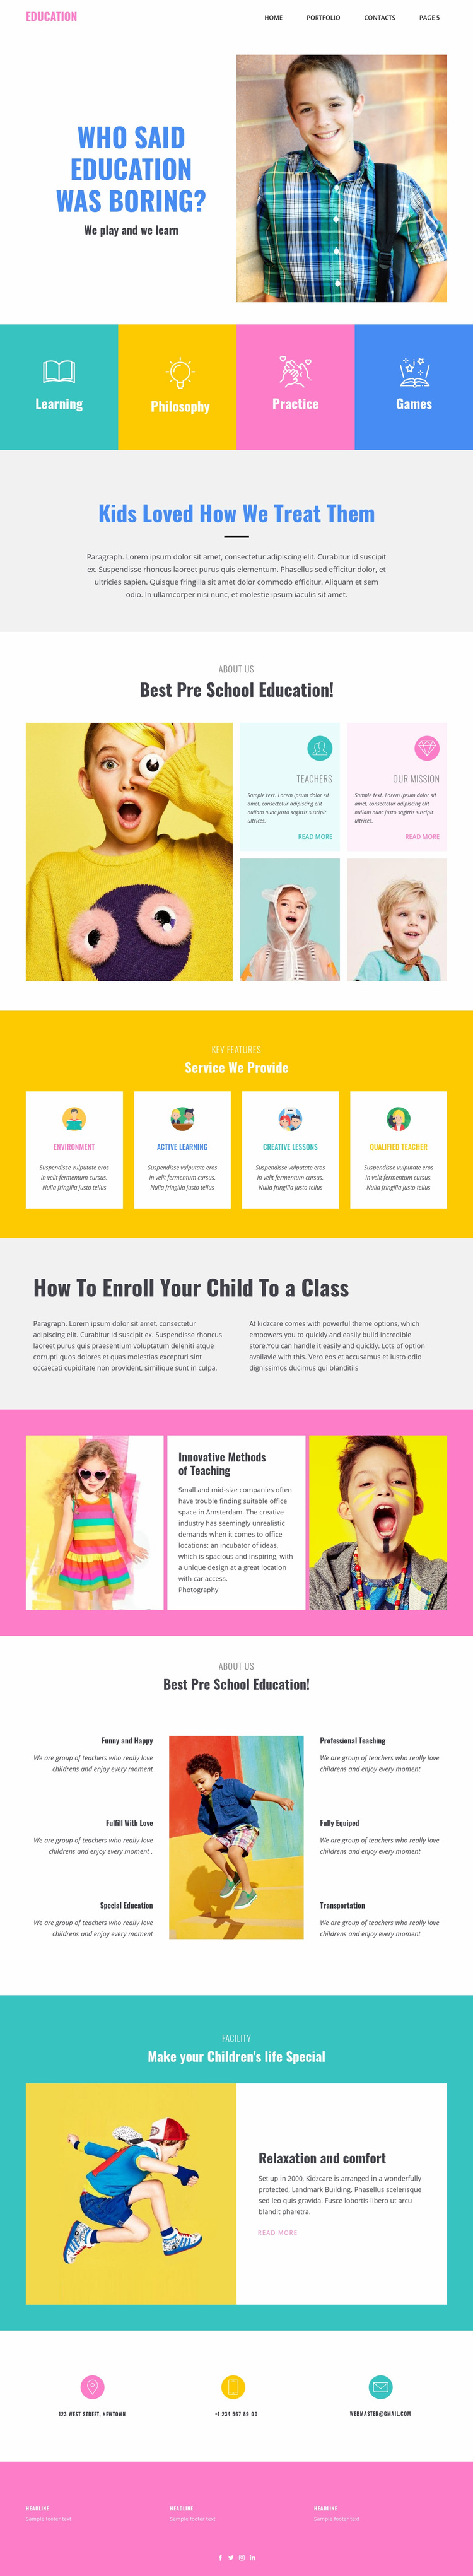 Fun of learning in school Web Page Designer